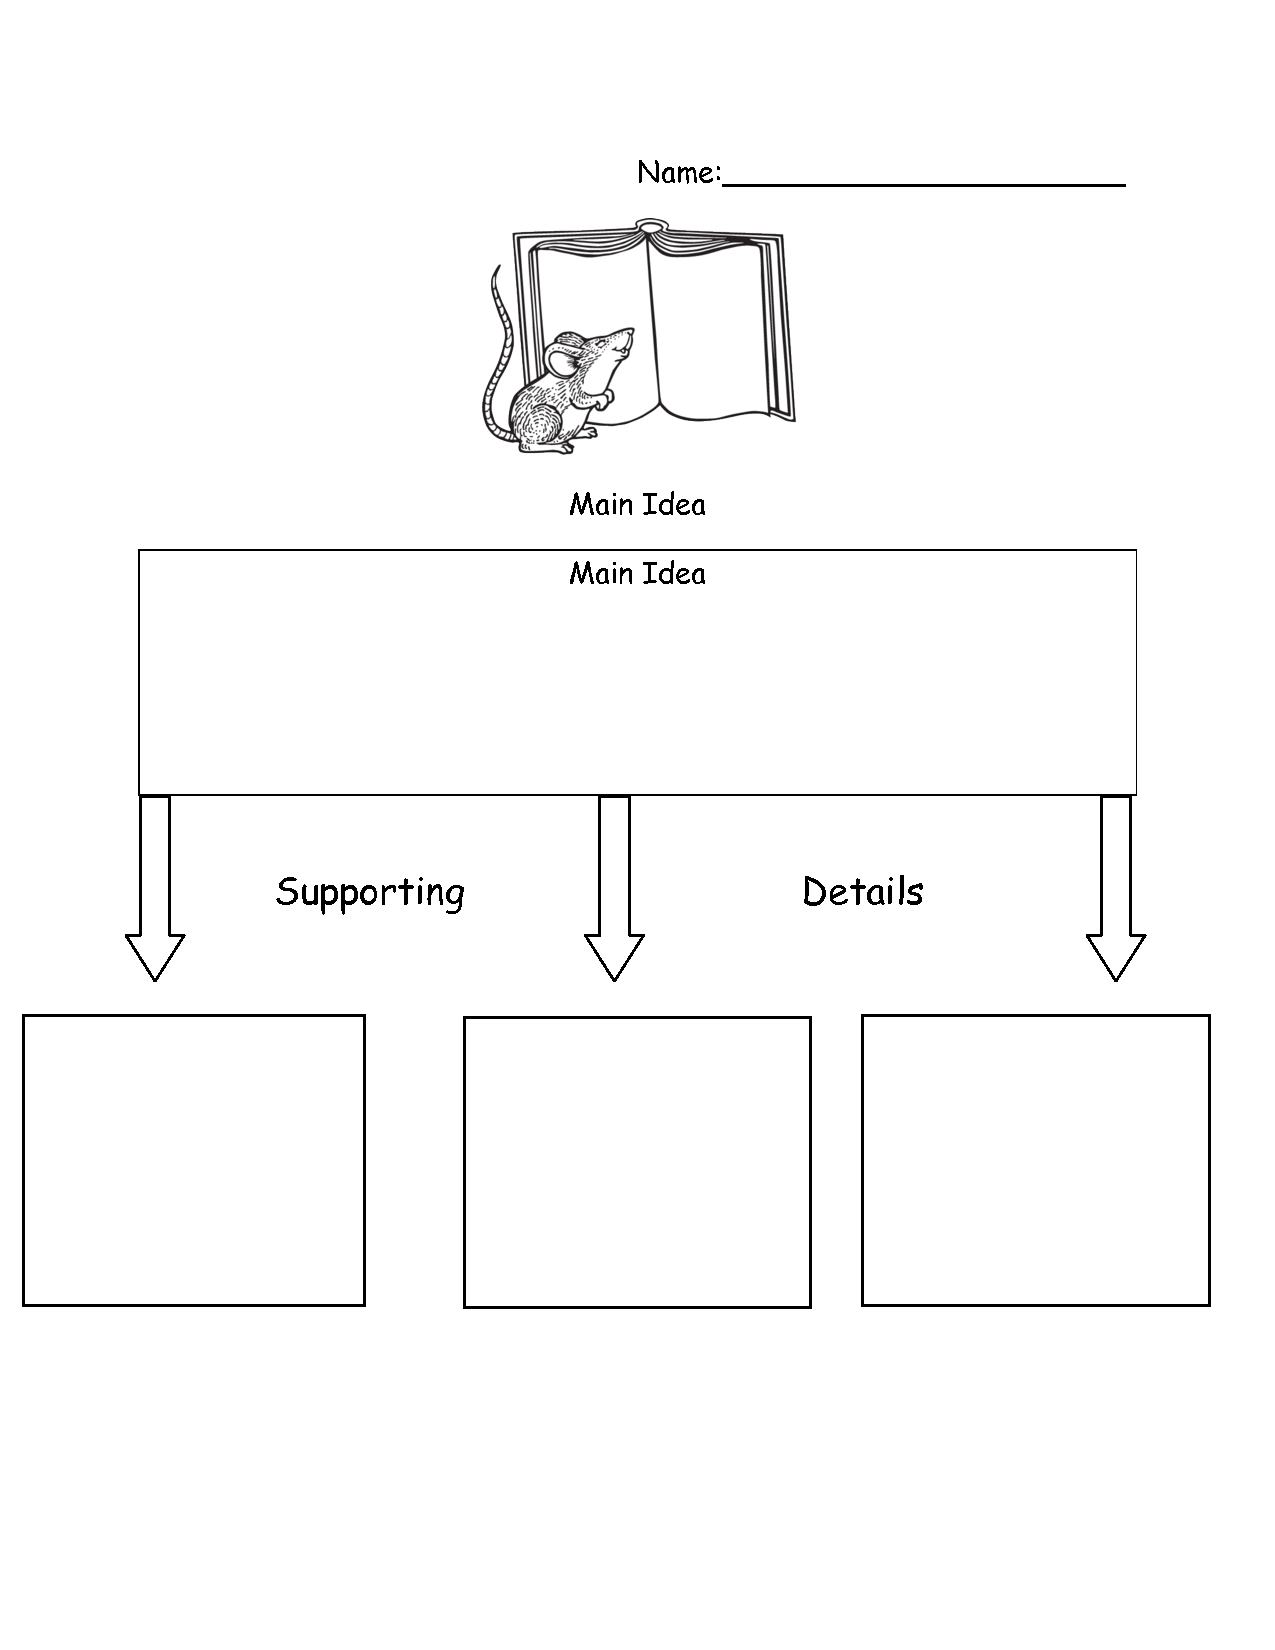 photo about Main Idea Graphic Organizer Printable referred to as Image Organizers Printable Primary Strategy image organizer